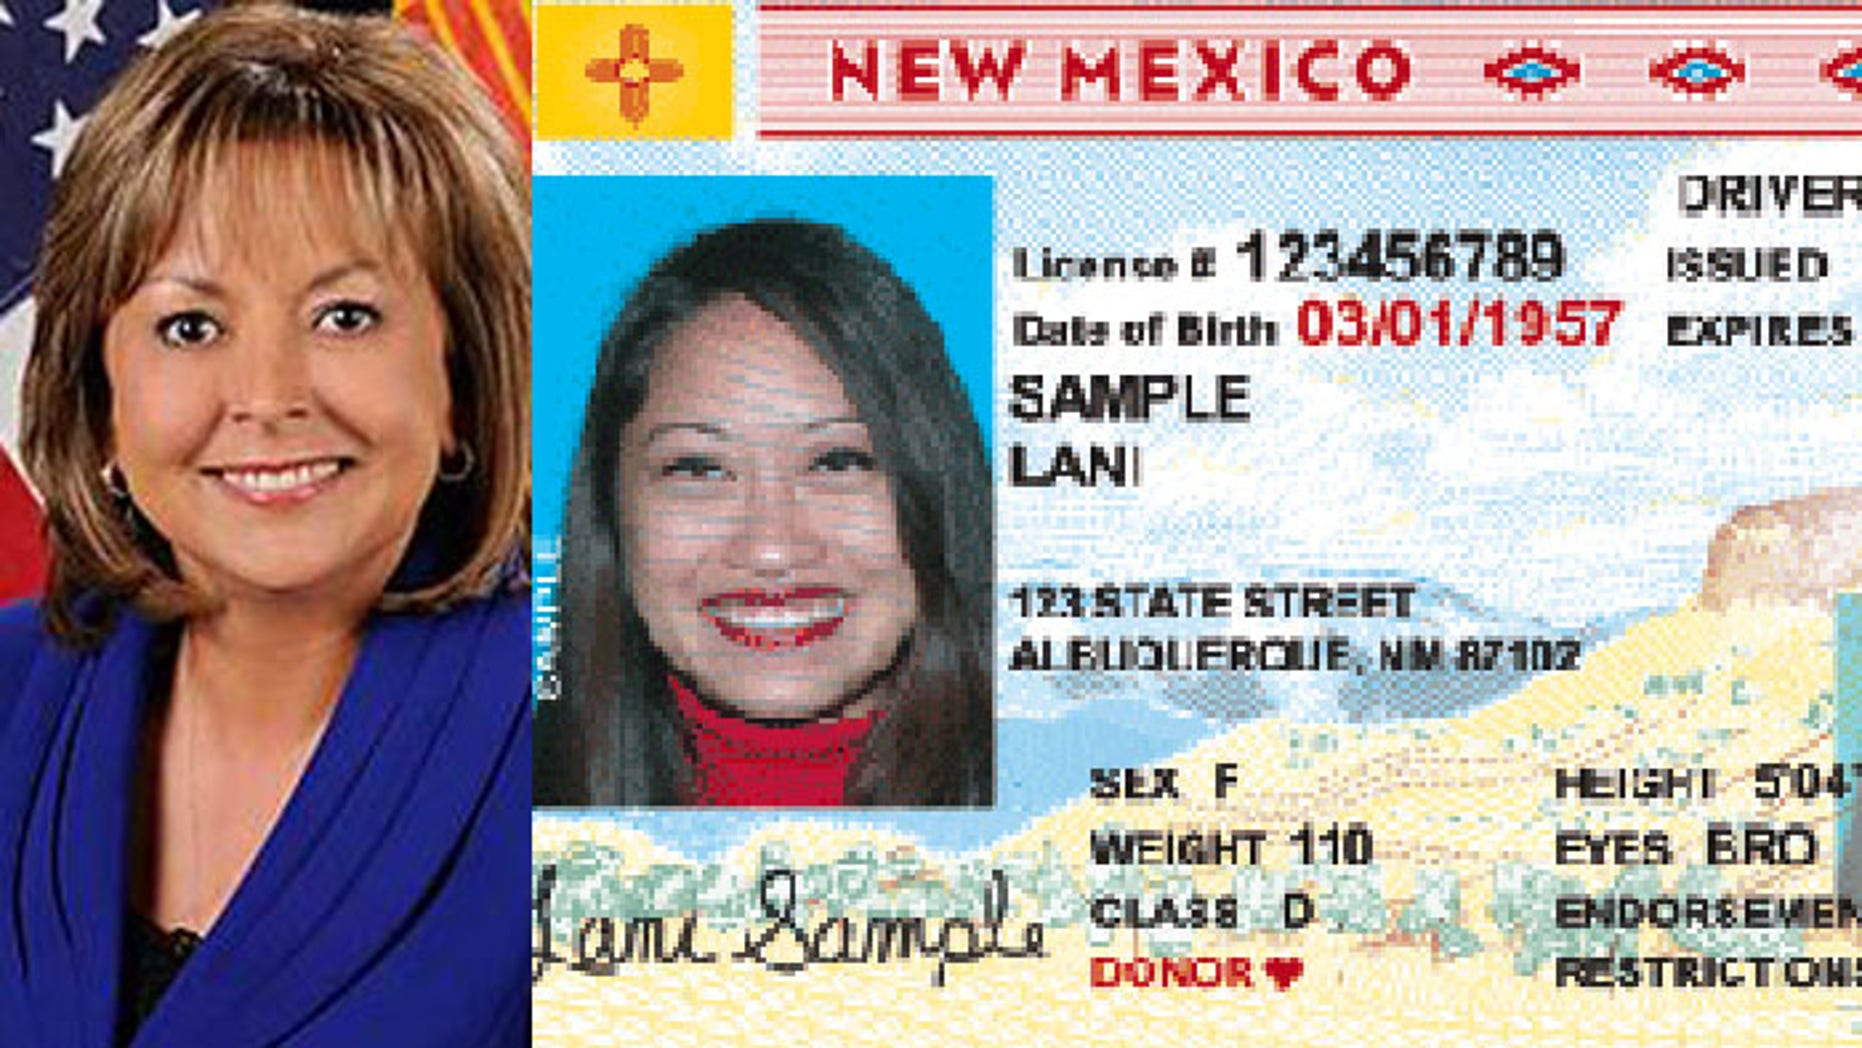 New Mexico Gov. Susana Martinez (l.) is warning that all of the state's driver's licenses will be questioned in January. (State of New Mexico)